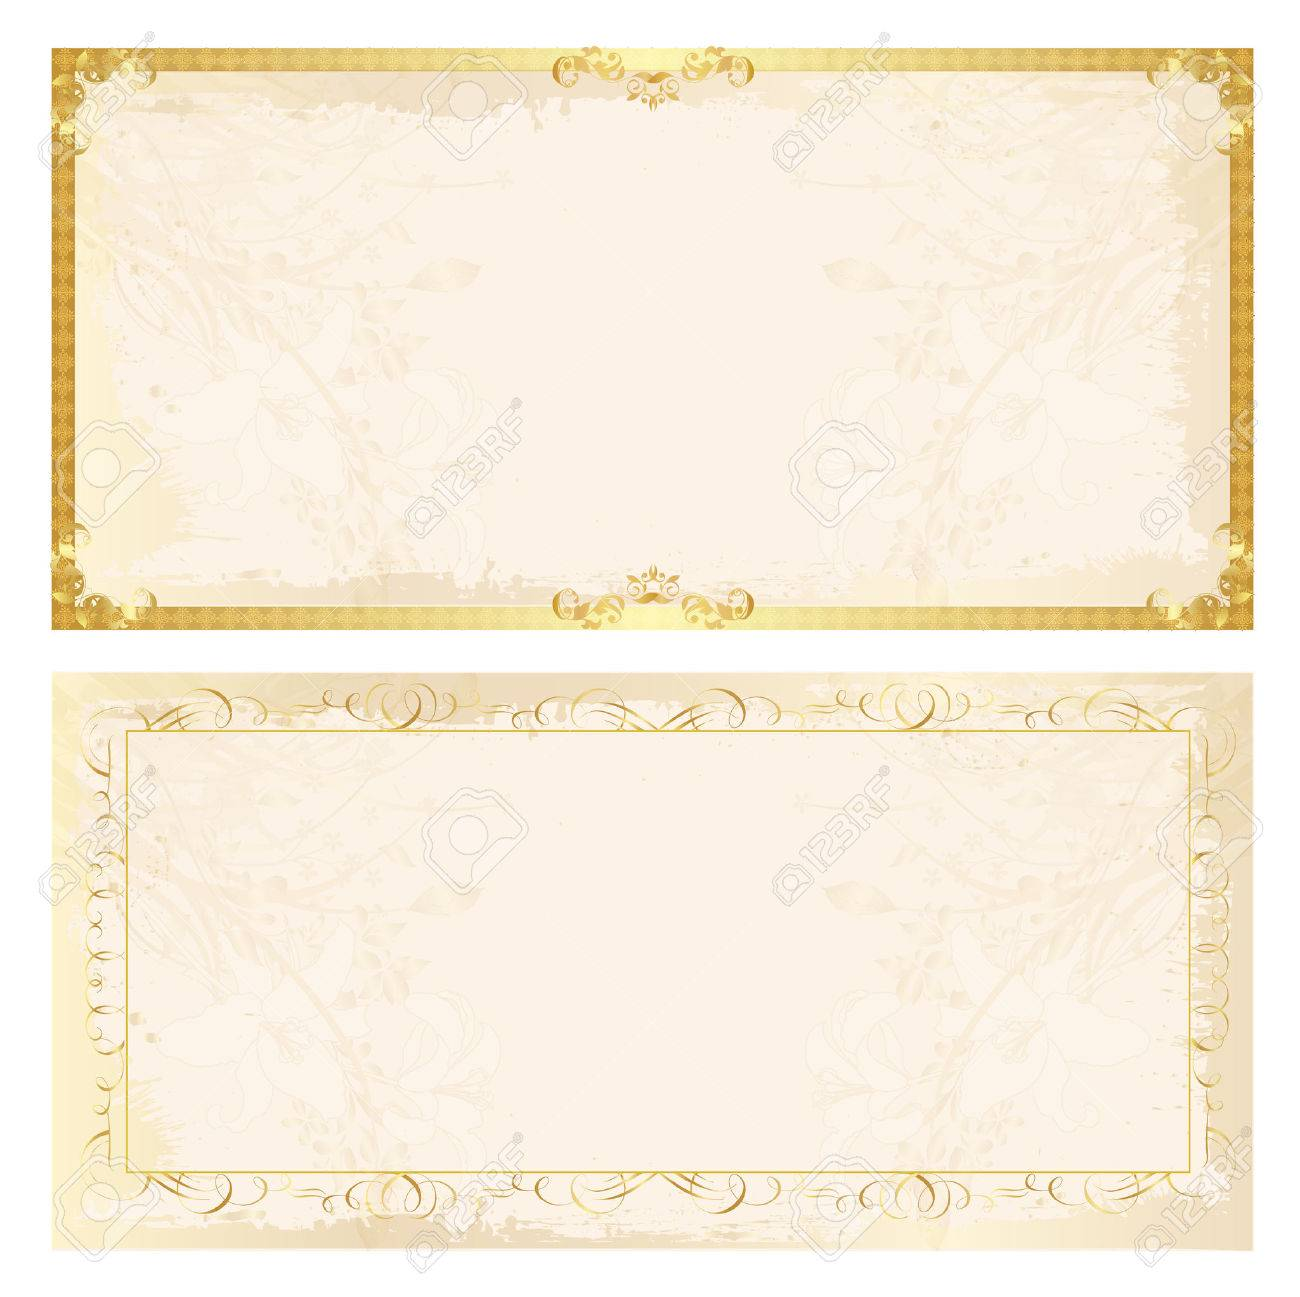 Certificate Frame Background Royalty Free Cliparts Vectors And